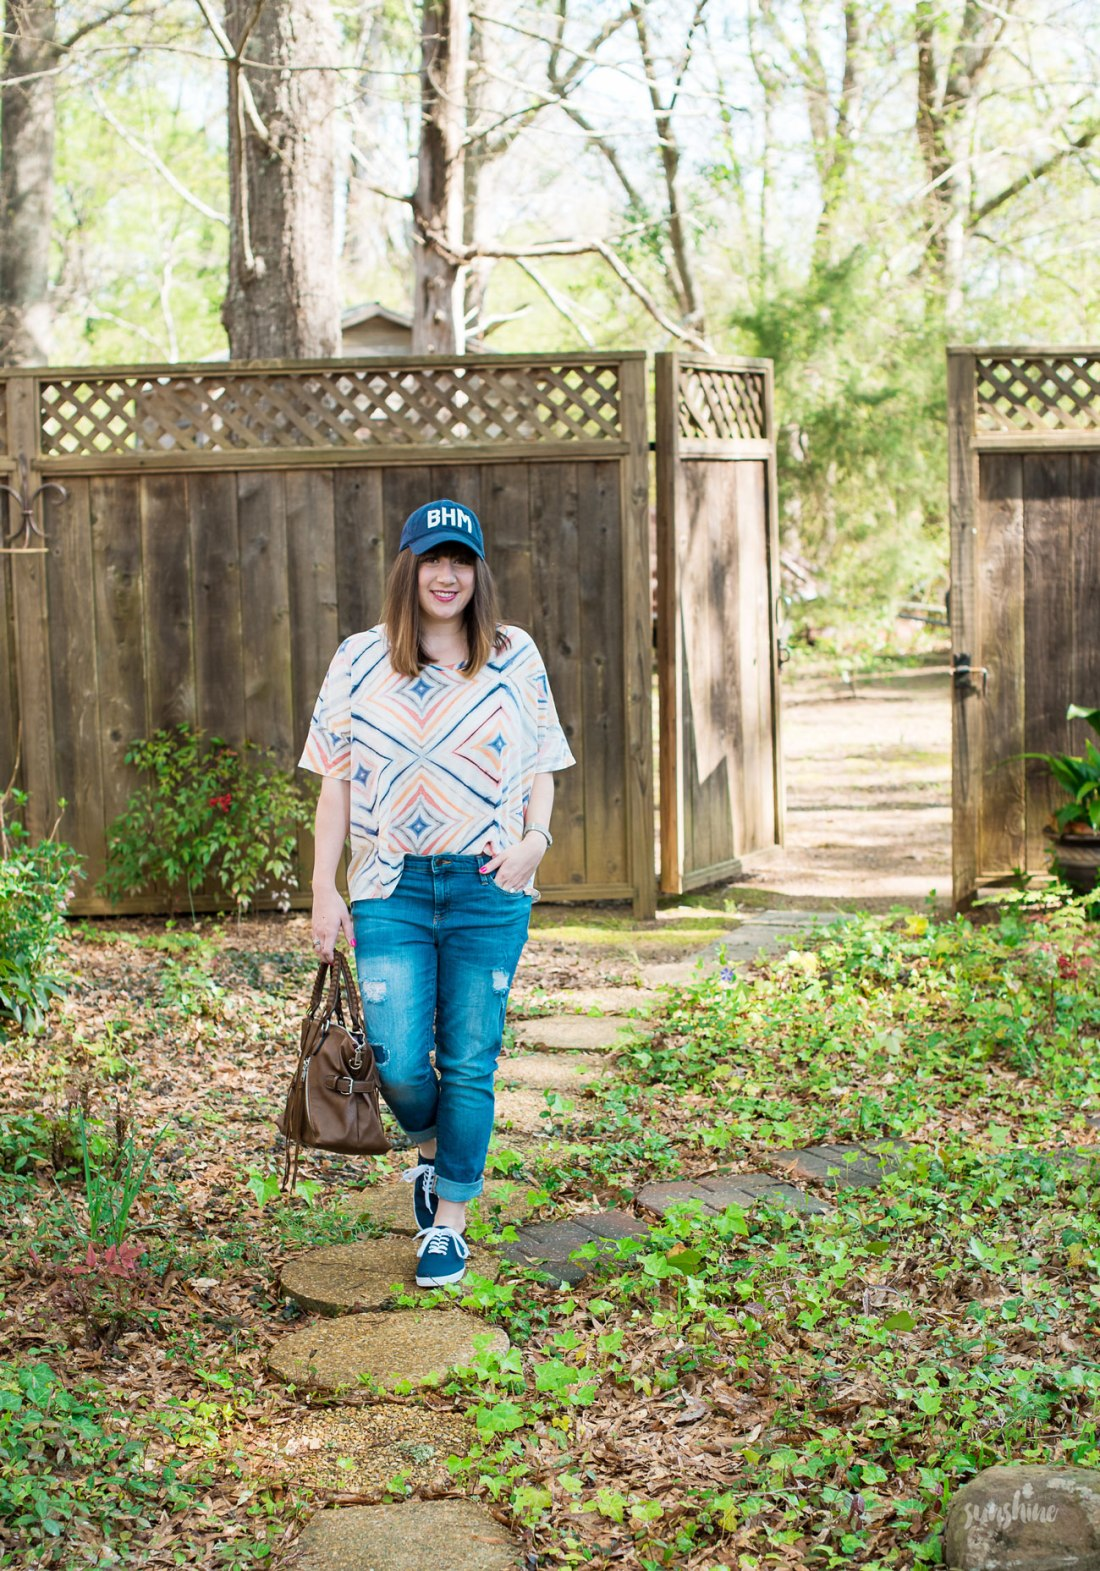 Aviate Brand Cap, Old Navy Tee, Gap Denim, Urban Expressions Handbag